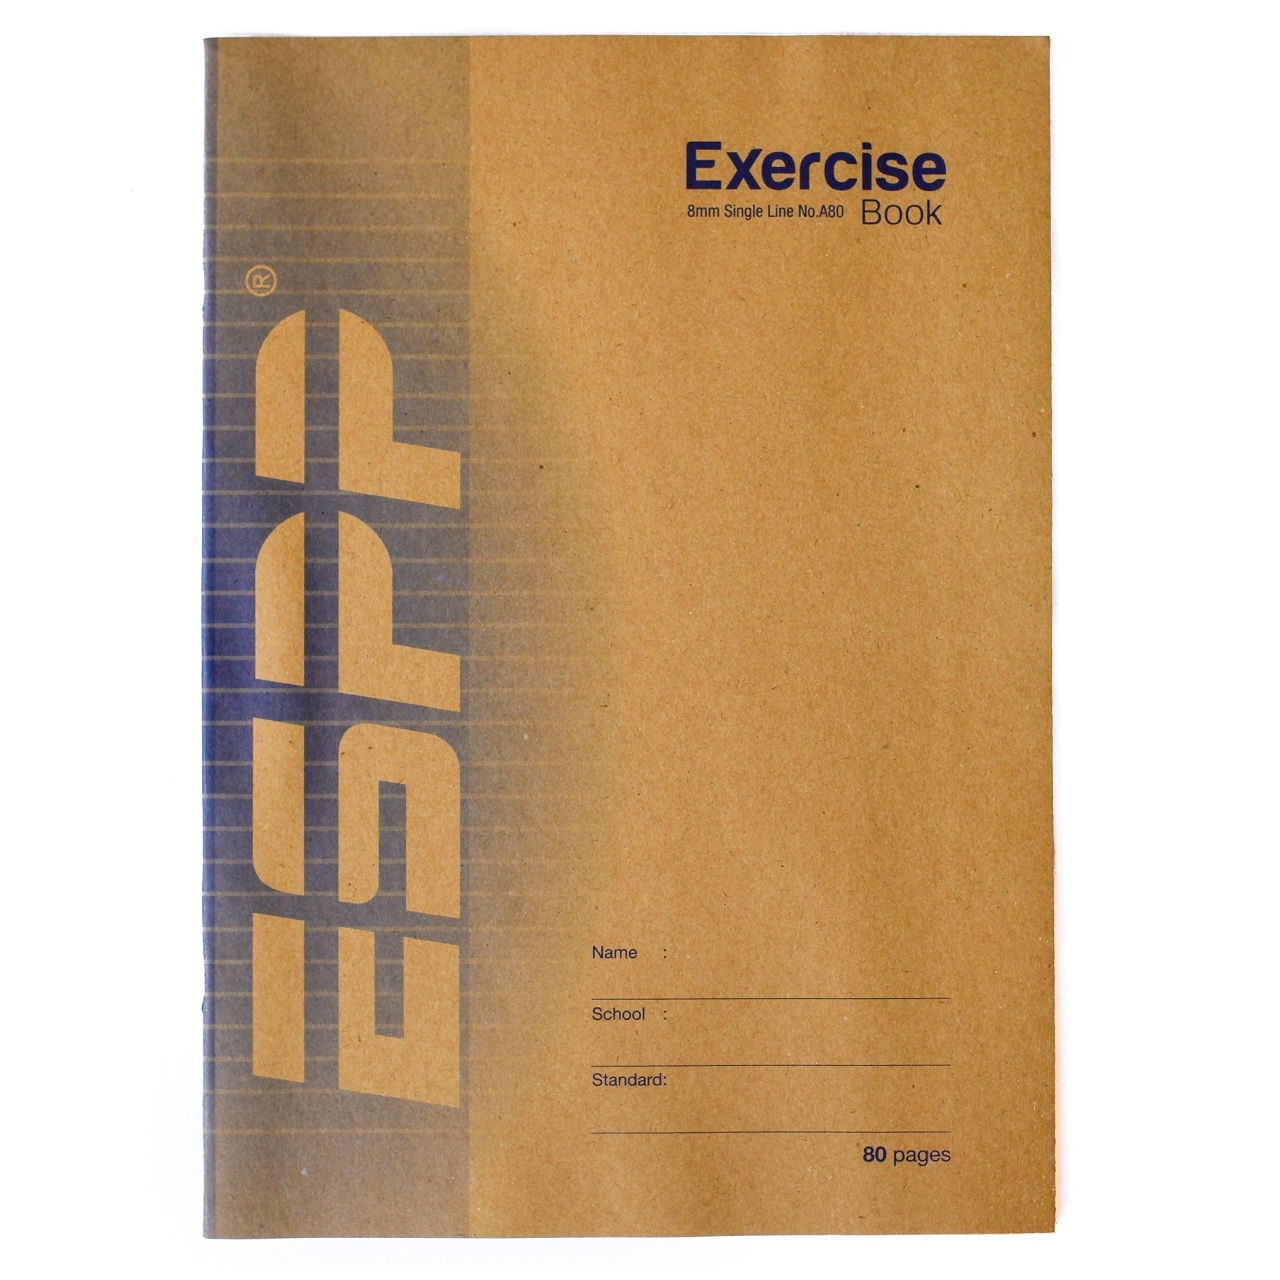 Exercise Book Cover Paper : Espp a single line exercise book using fsc paper w kraft